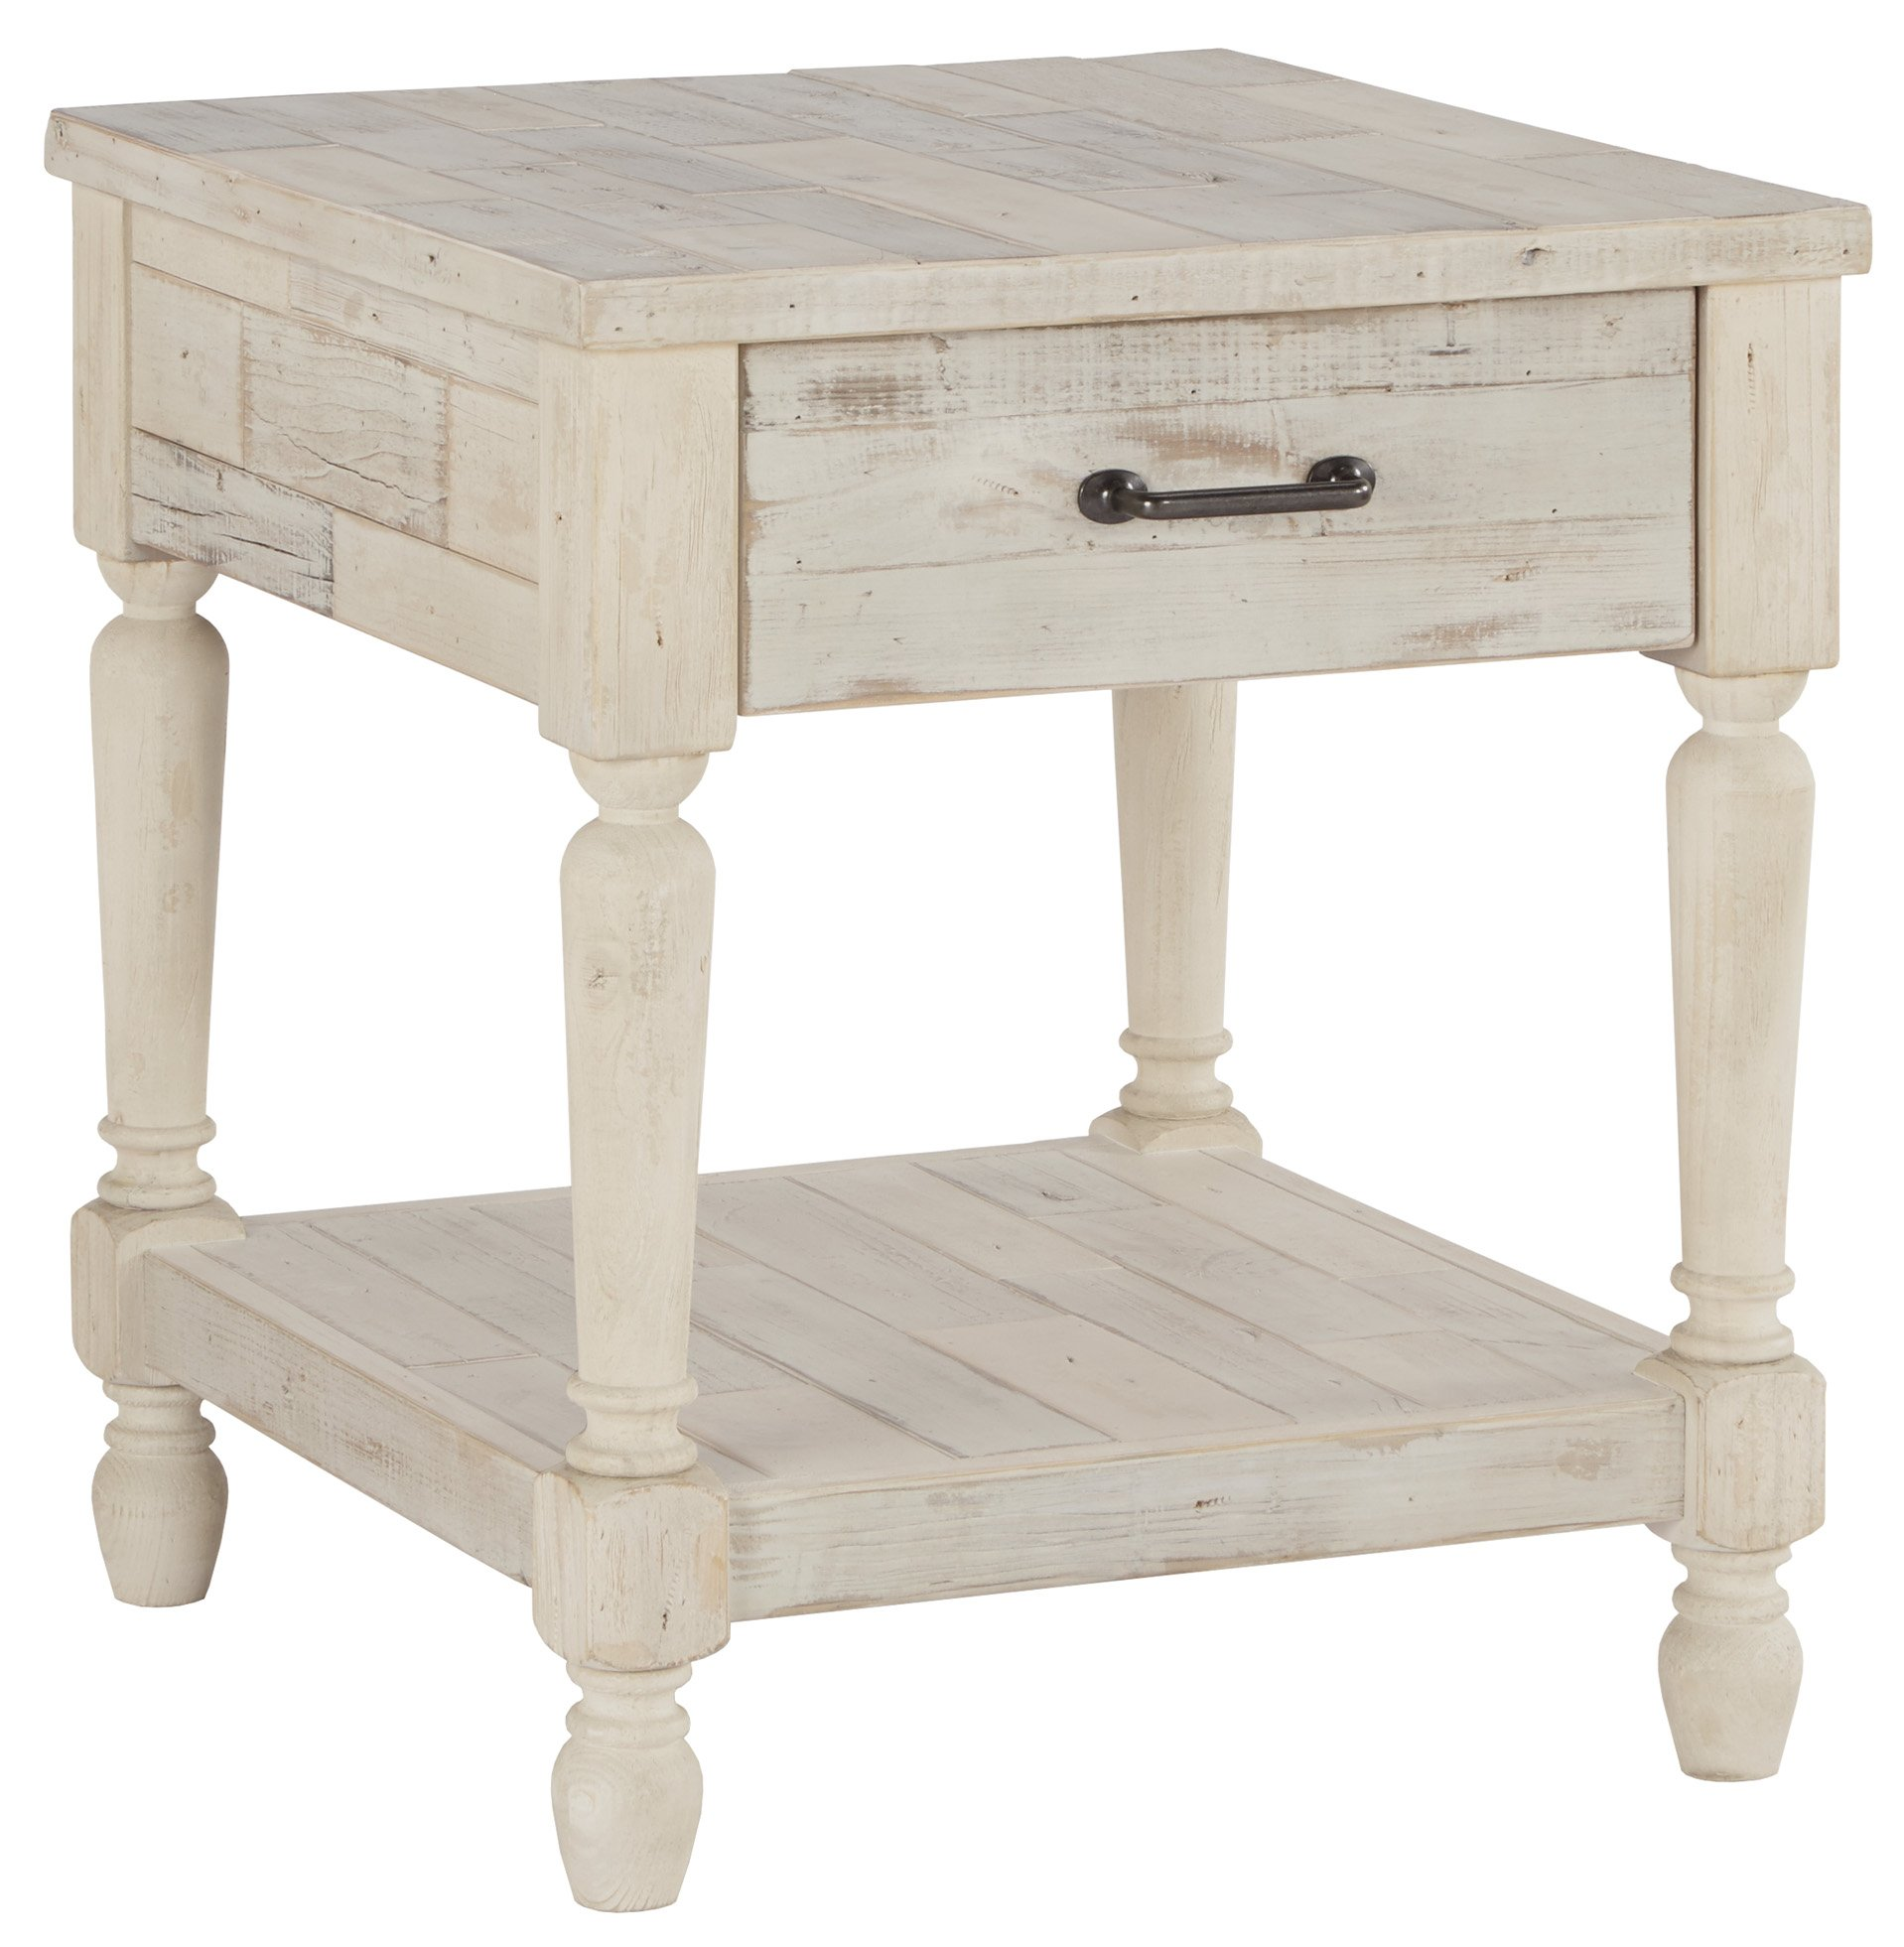 Ashley Furniture Signature Design - Shawnalore Casual Rectangular End Table with Storage - White Wash by Signature Design by Ashley